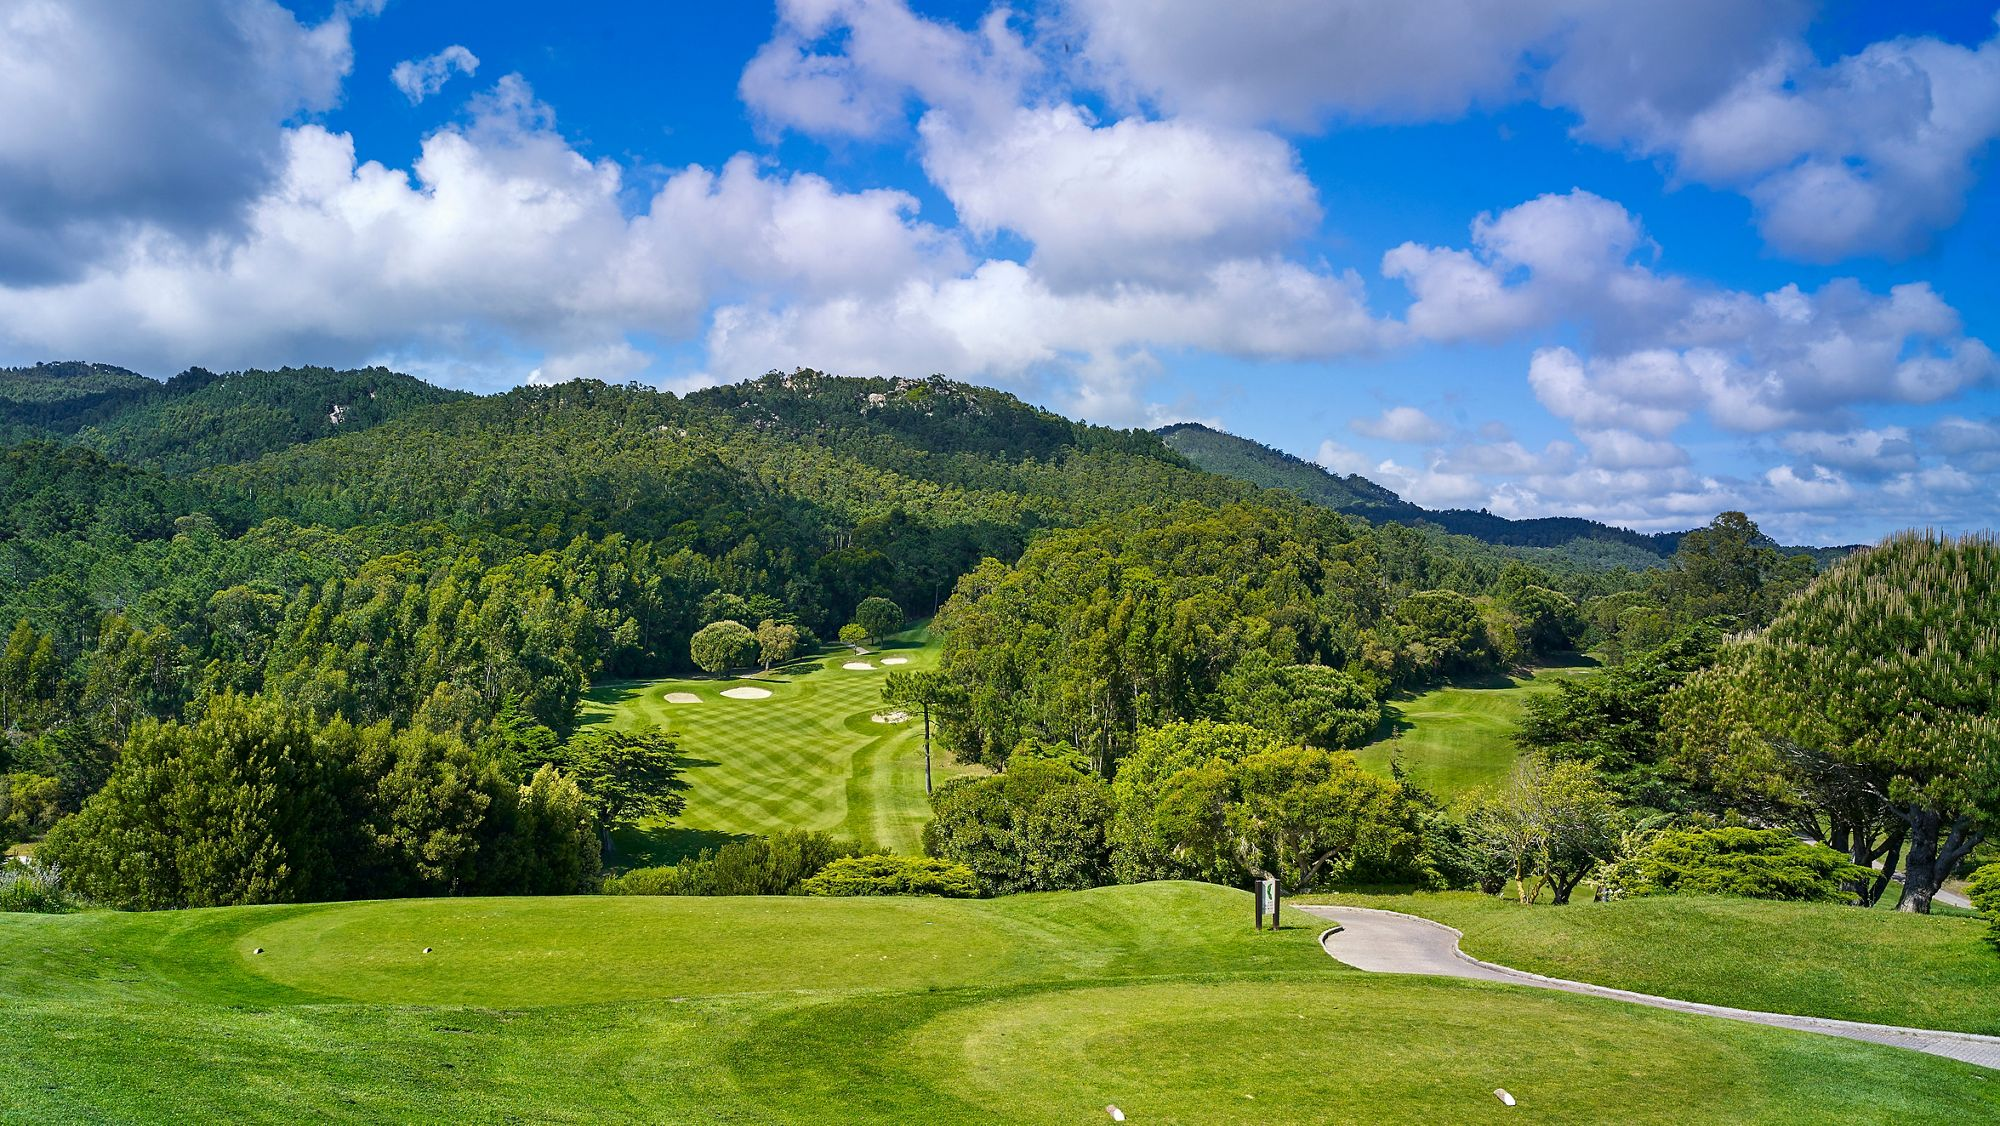 A large golf course overlooked by rolling hills and trees